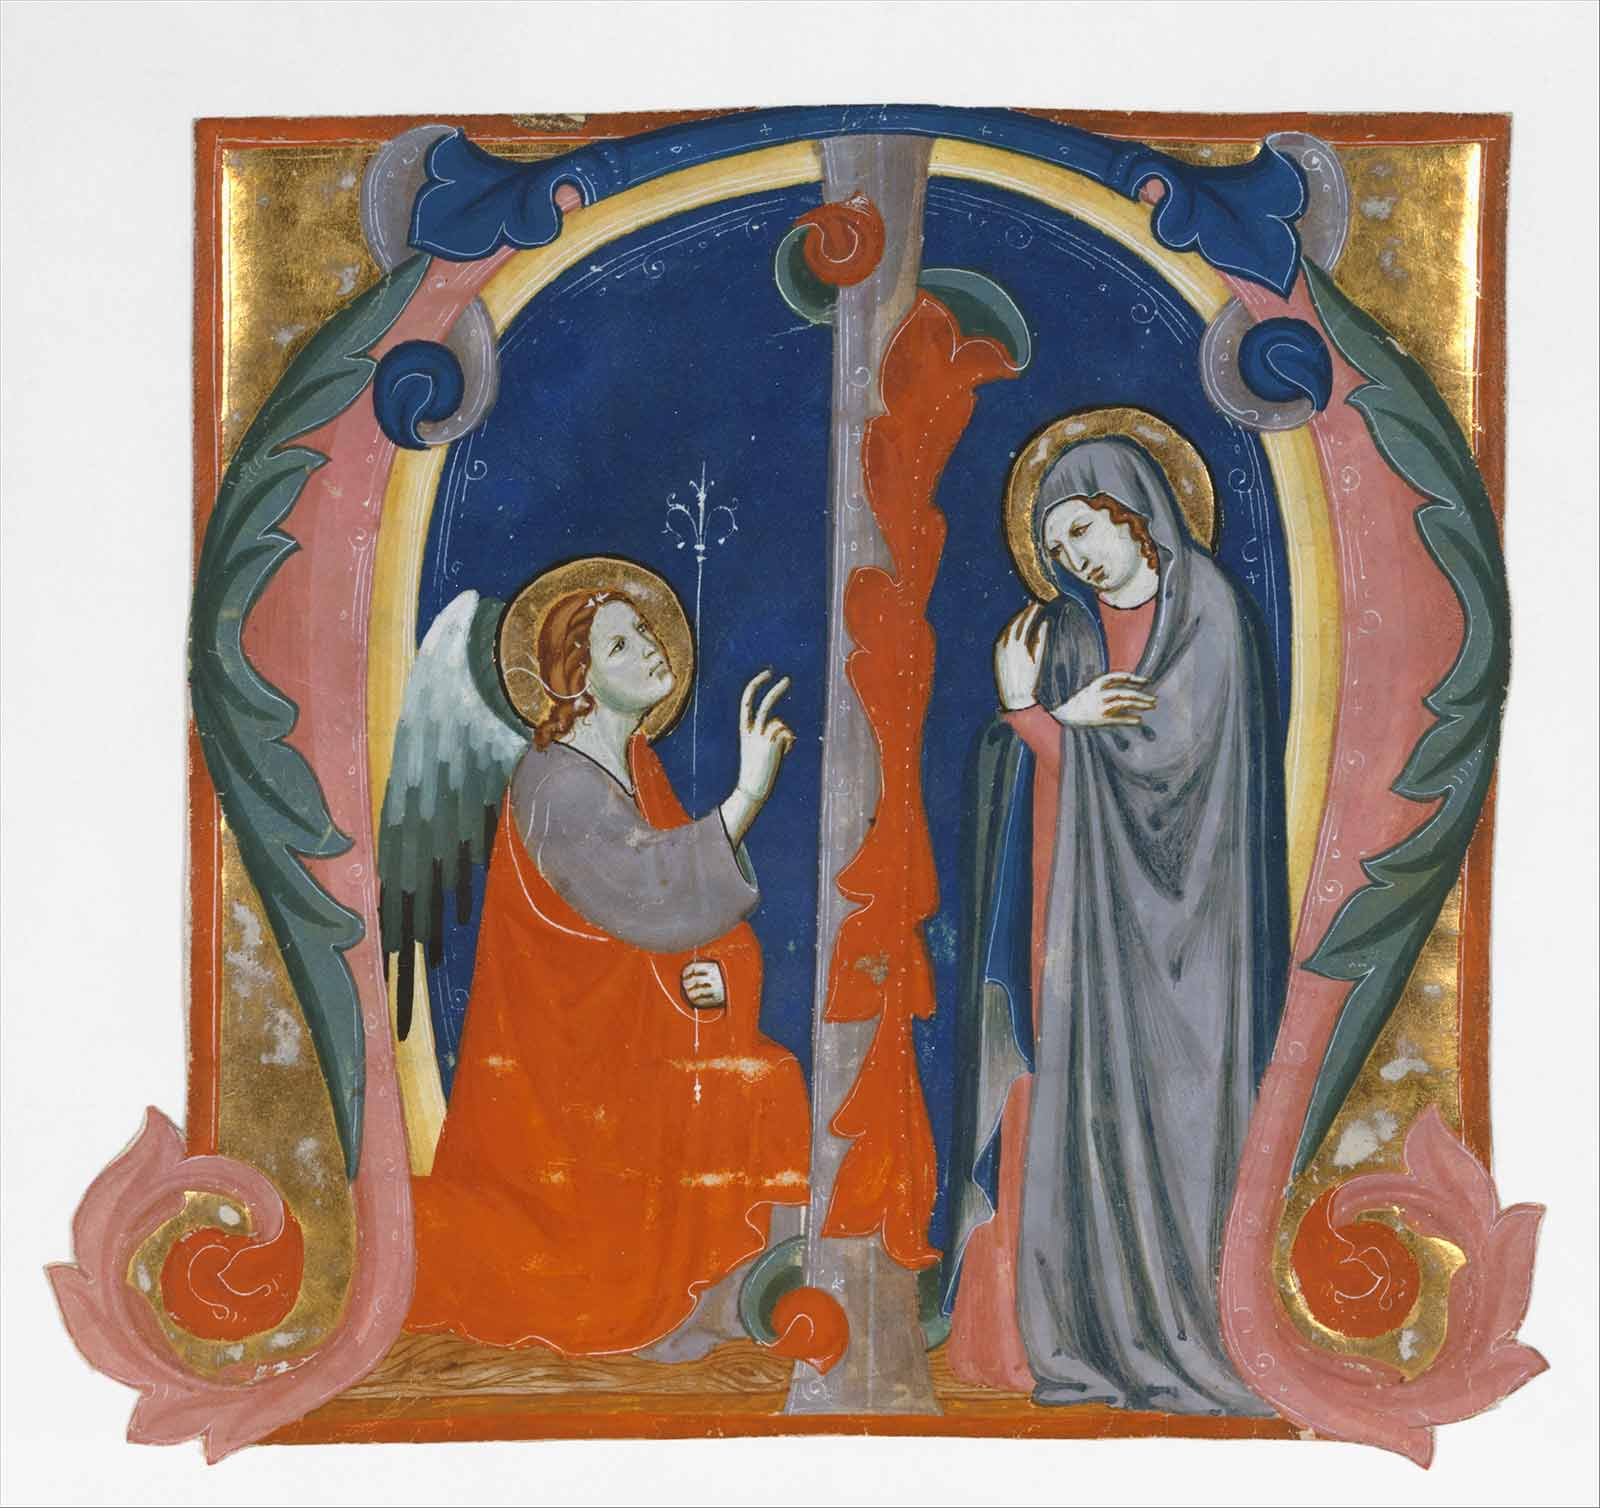 Annunciation in an Initial M